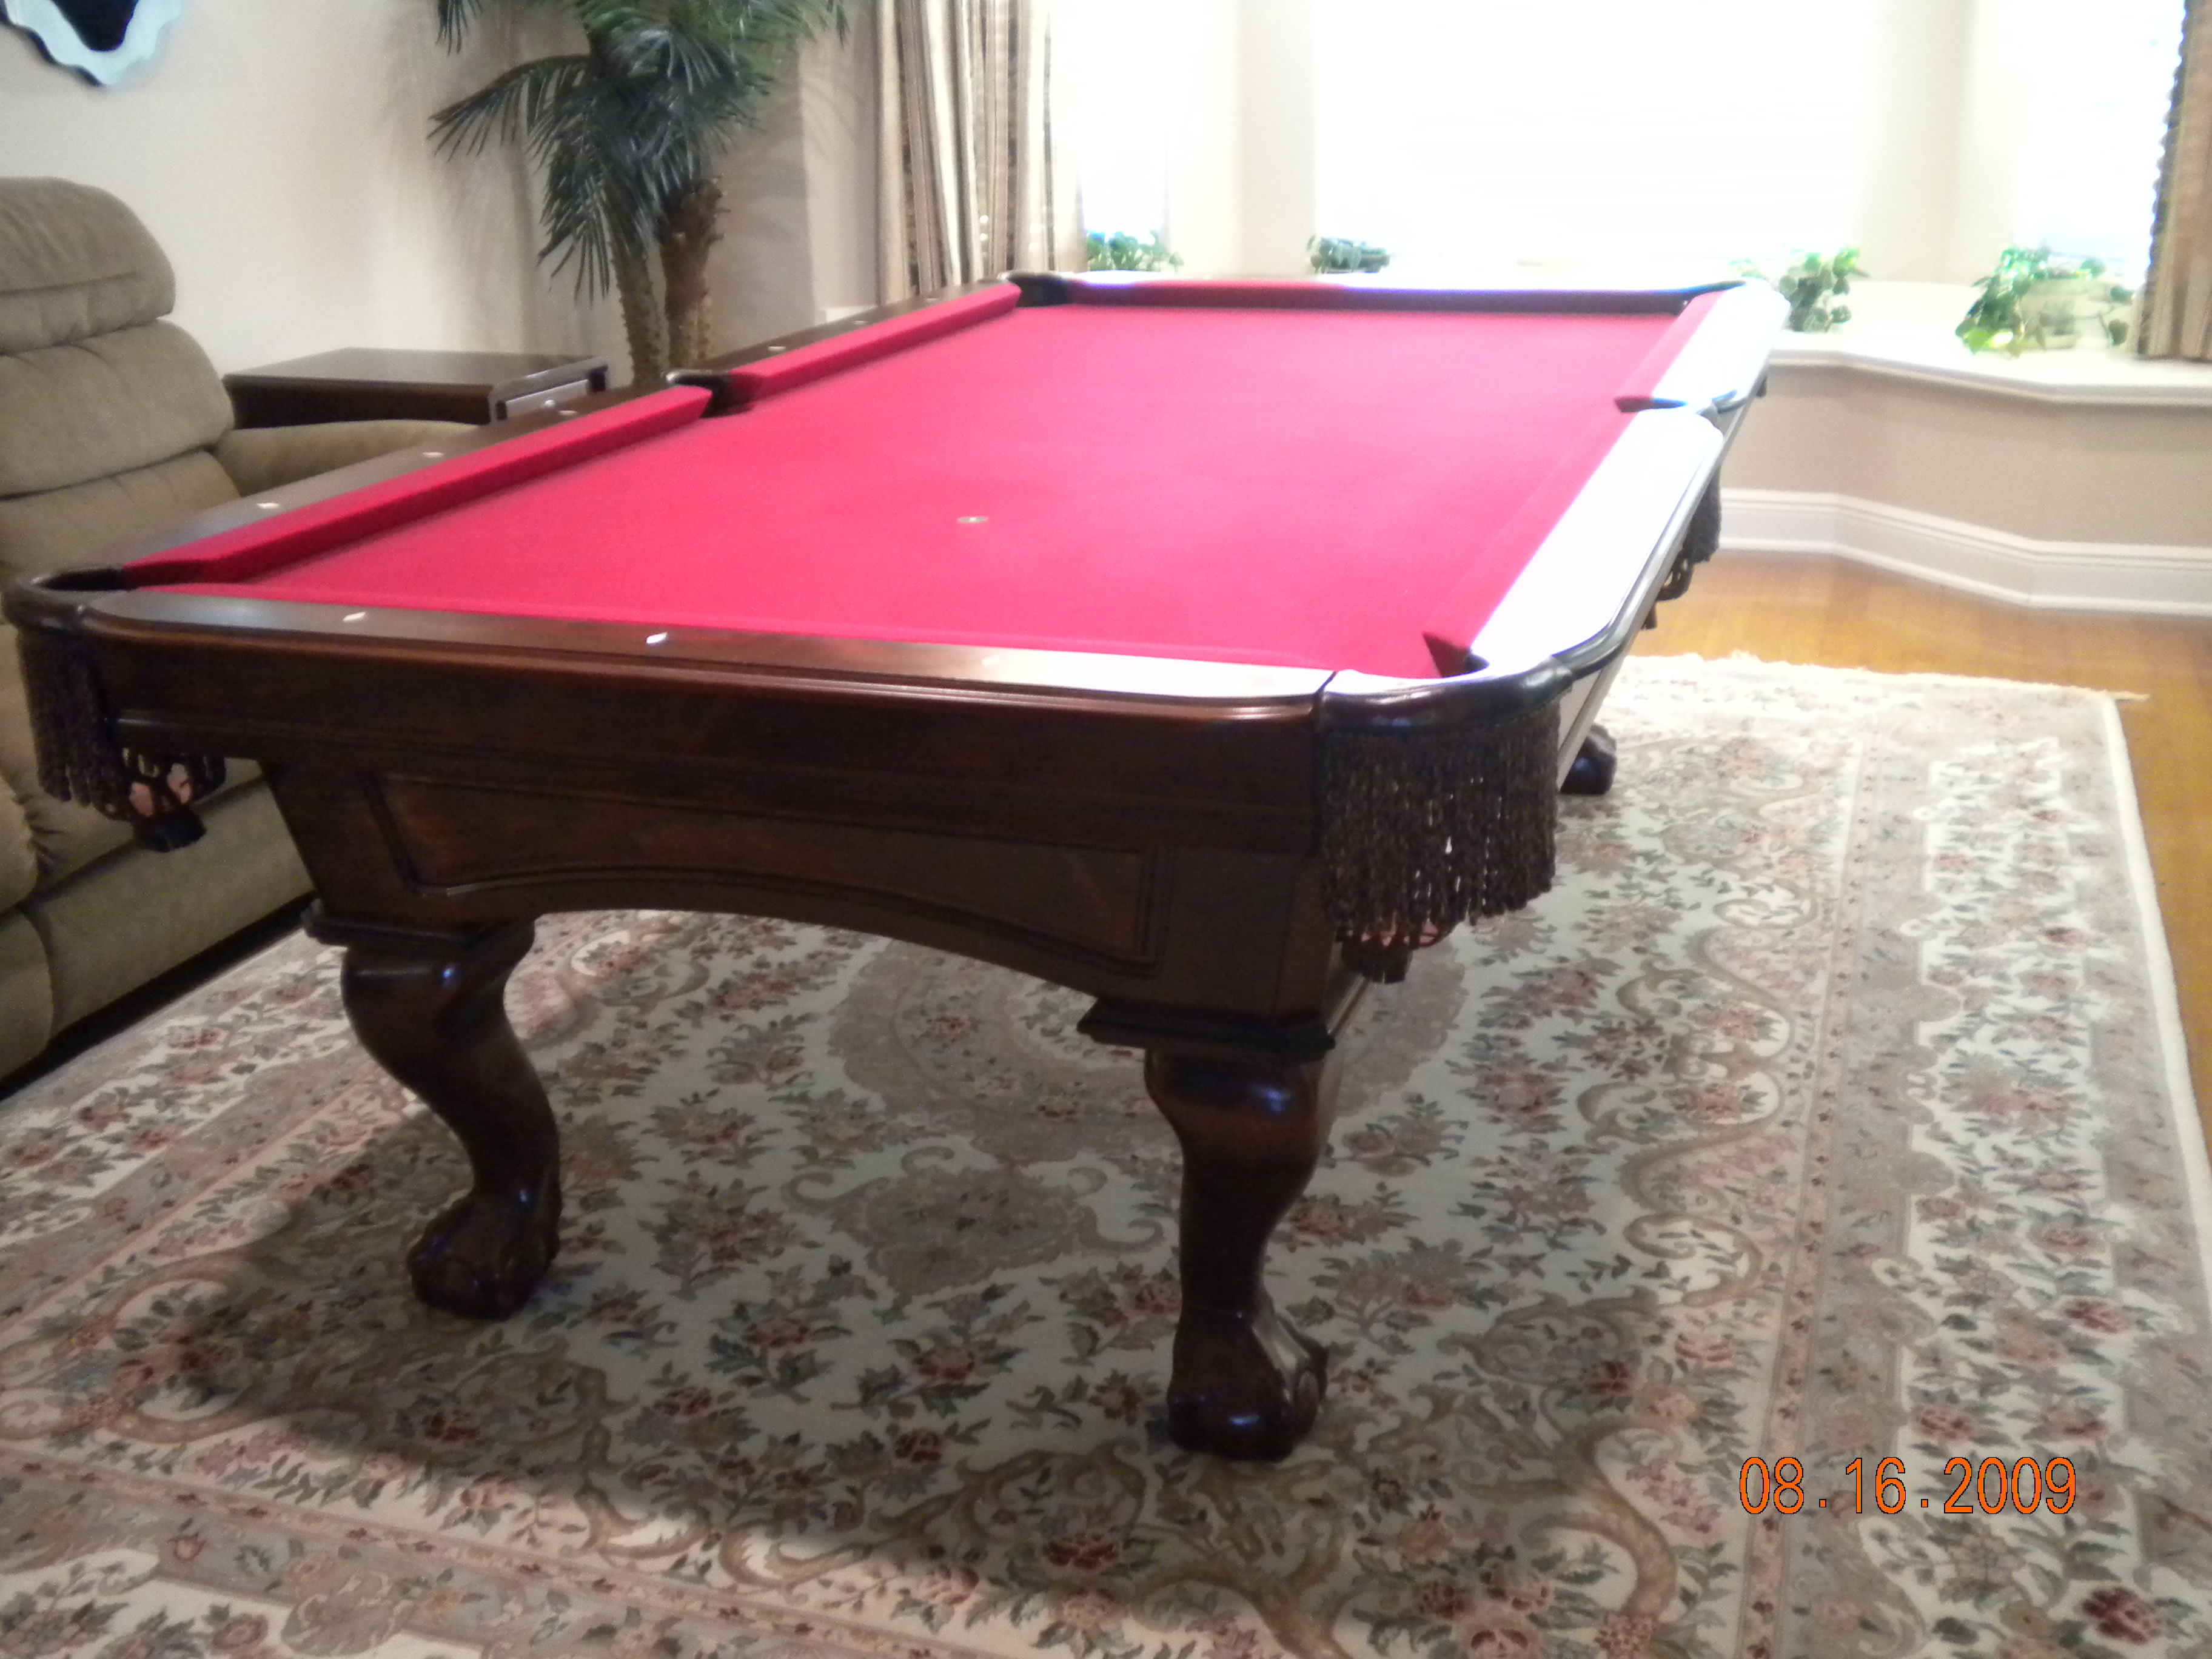 Tablespreowned - Craftmaster pool table